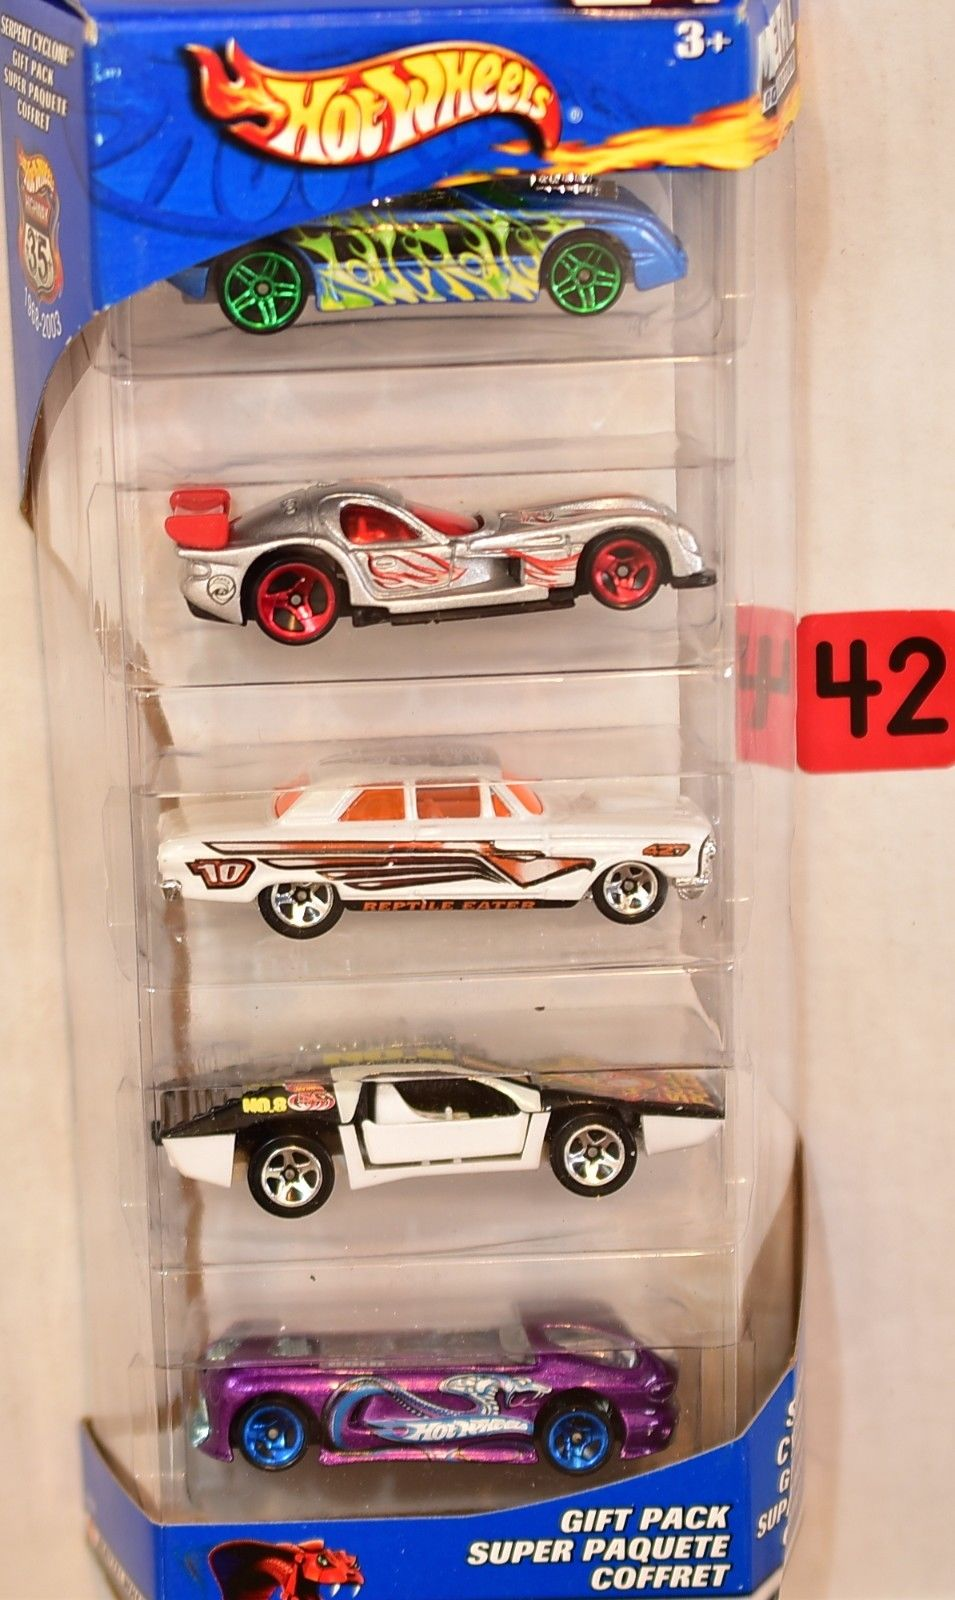 HOT WHEELS 2002 5 CAR GIFT PACK SIDE KICK PANOZ DEORA FORD